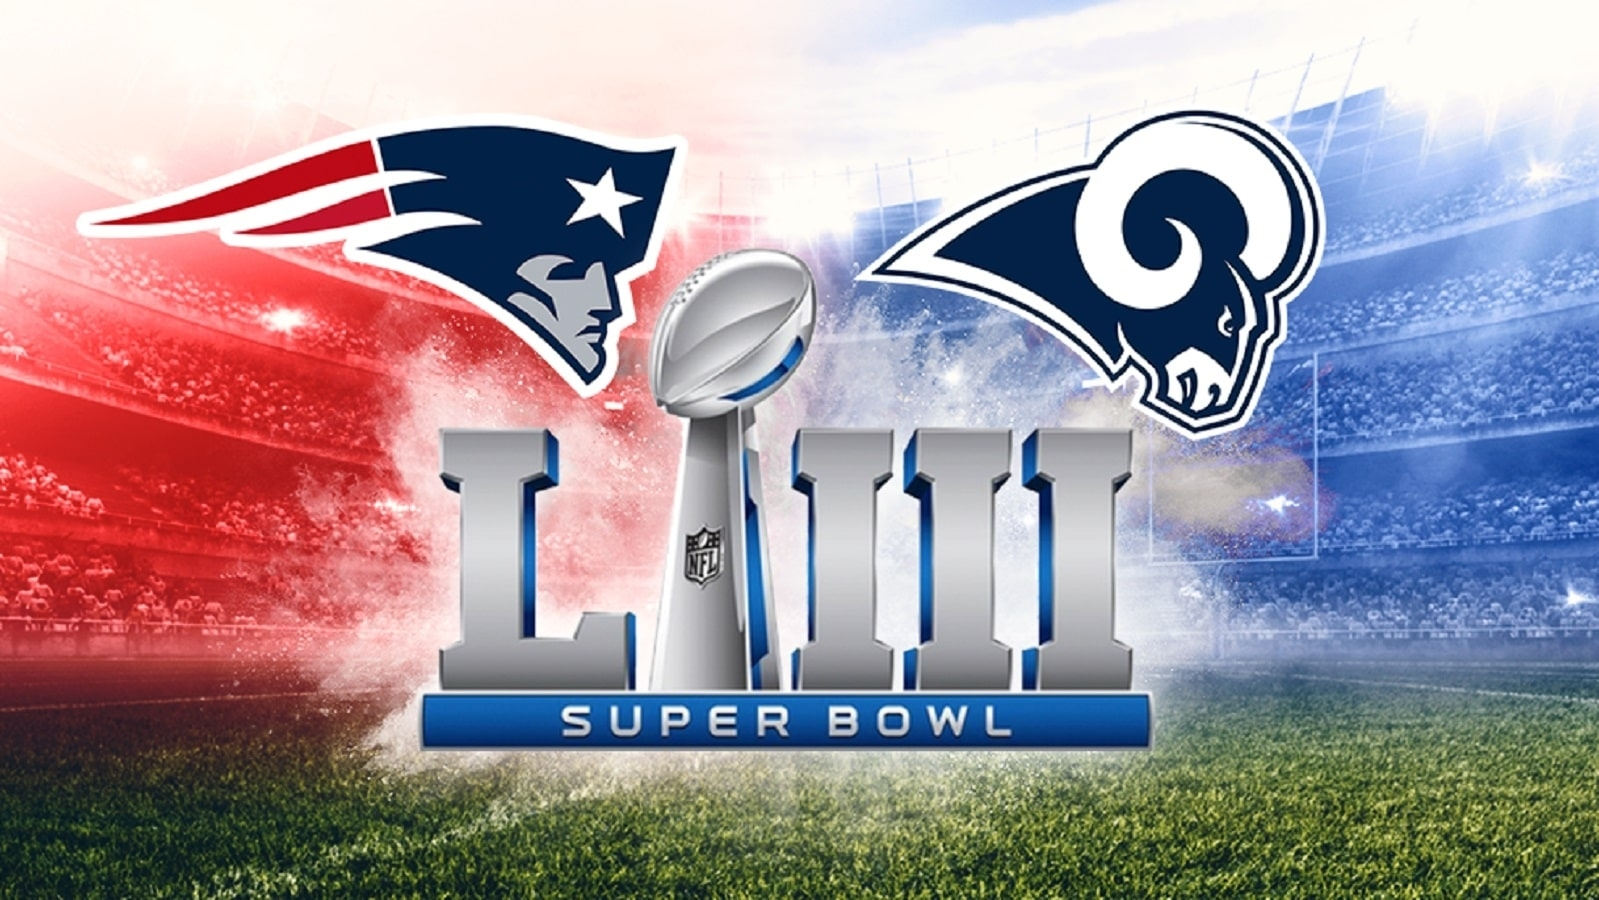 How To Stream Super Bowl Liii Online For Free In February 2019 regarding Cbs All Access Super Bowl